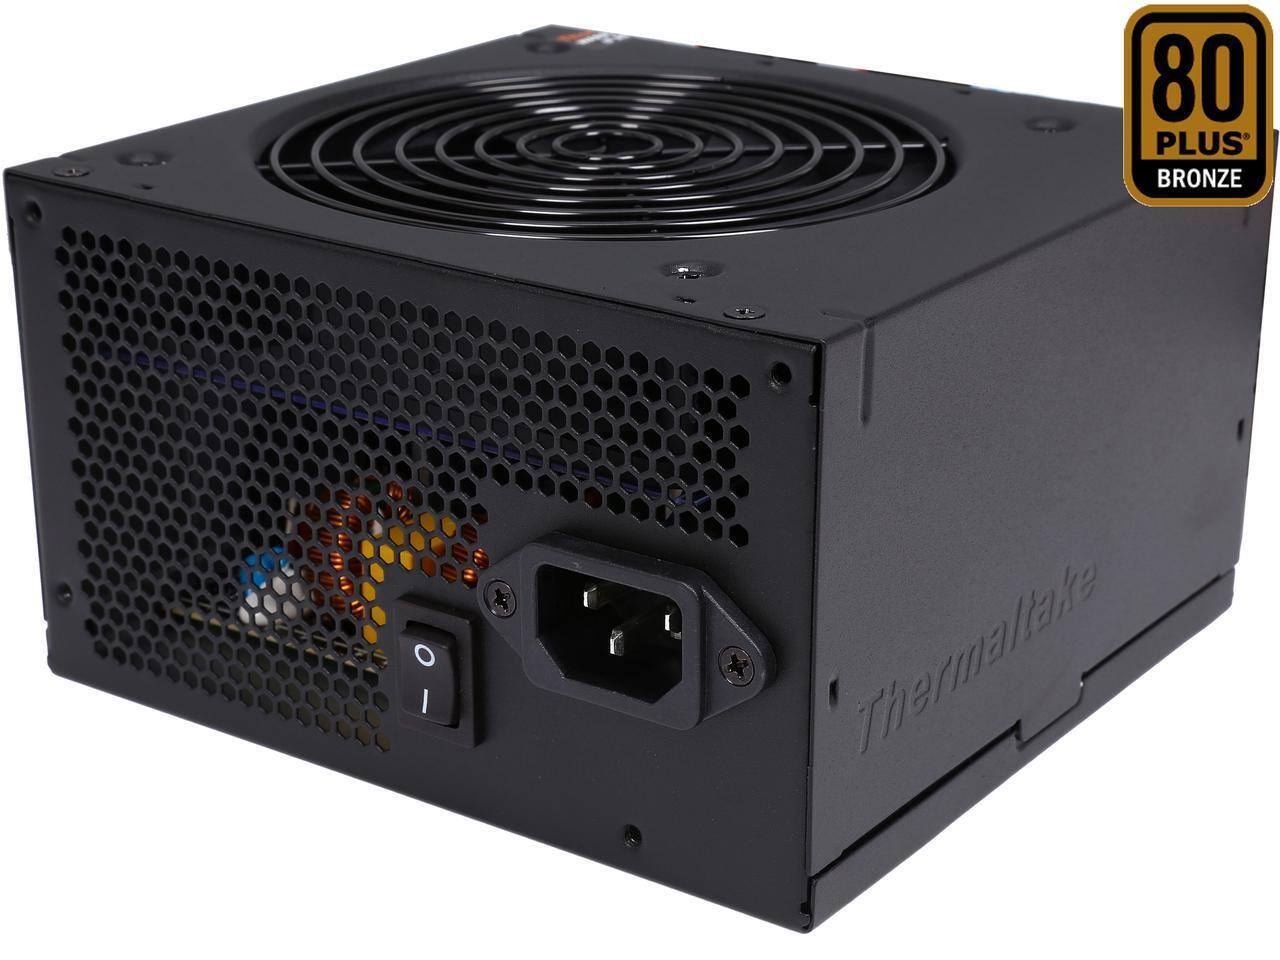 Thermaltake TR2 Bronze 500W SLI/CrossFire Ready ATX12V v2.31 / EPS v2.92 80 PLUS BRONZE Certified 5 Year Warranty Active PFC Power Supply Haswell Ready PS-TR2-0500NPCBUS-B $19.99